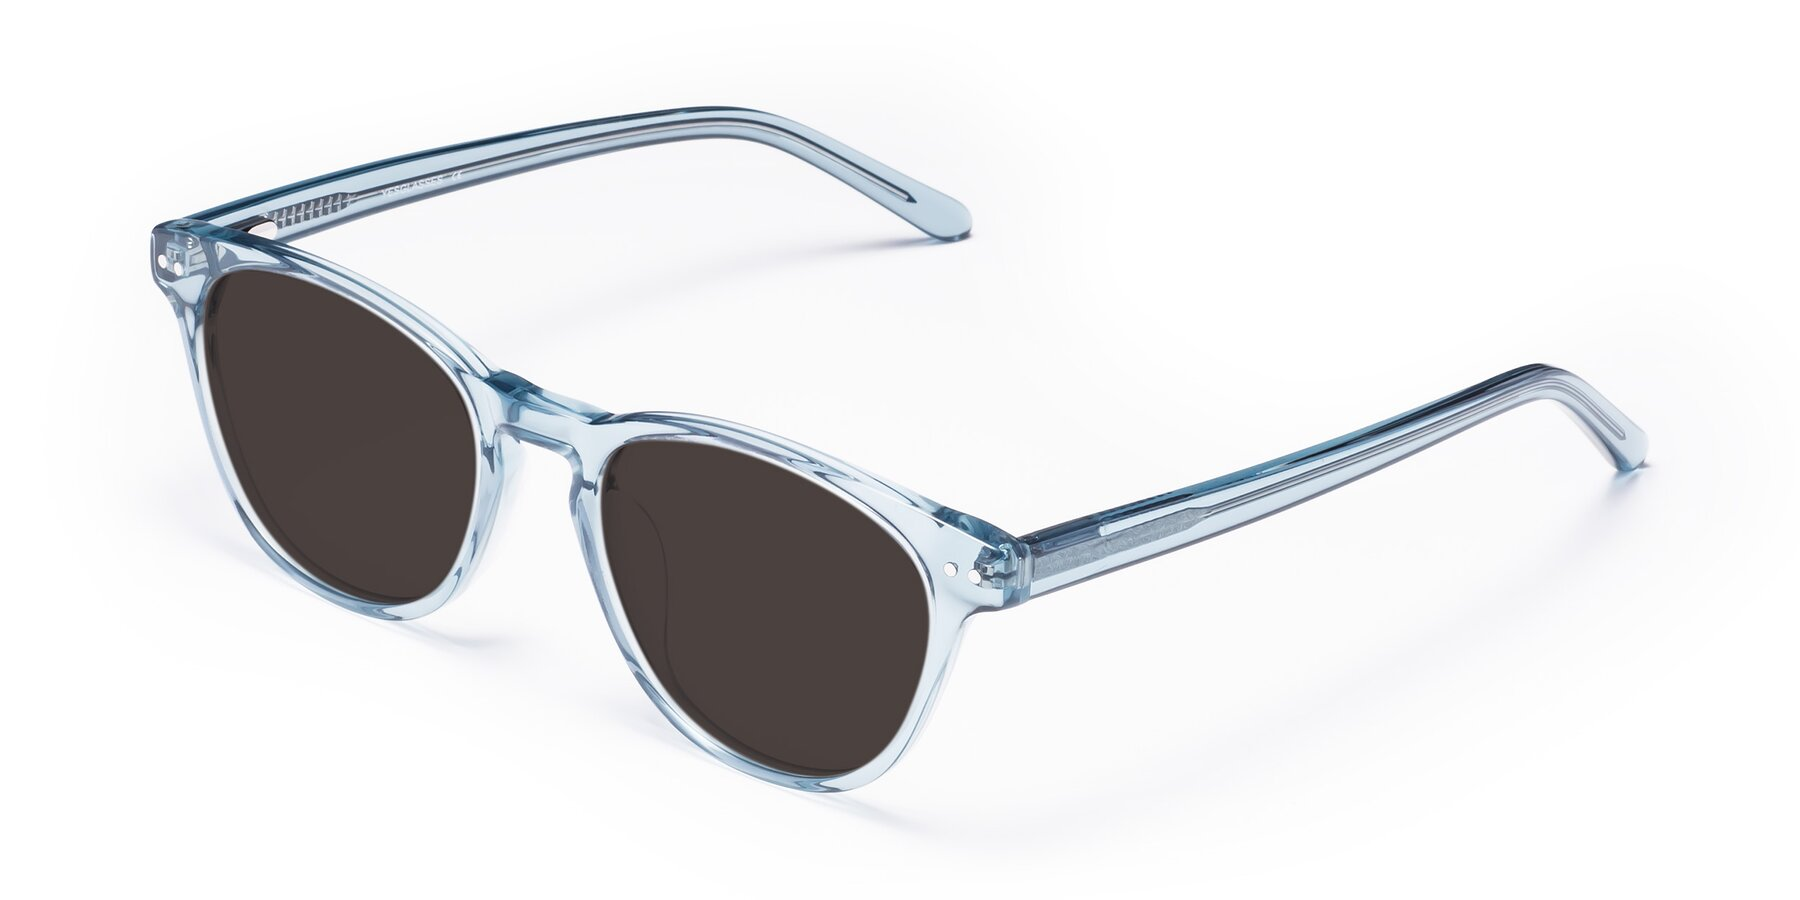 Angle of Blaze in Light Blue with Gray Tinted Lenses